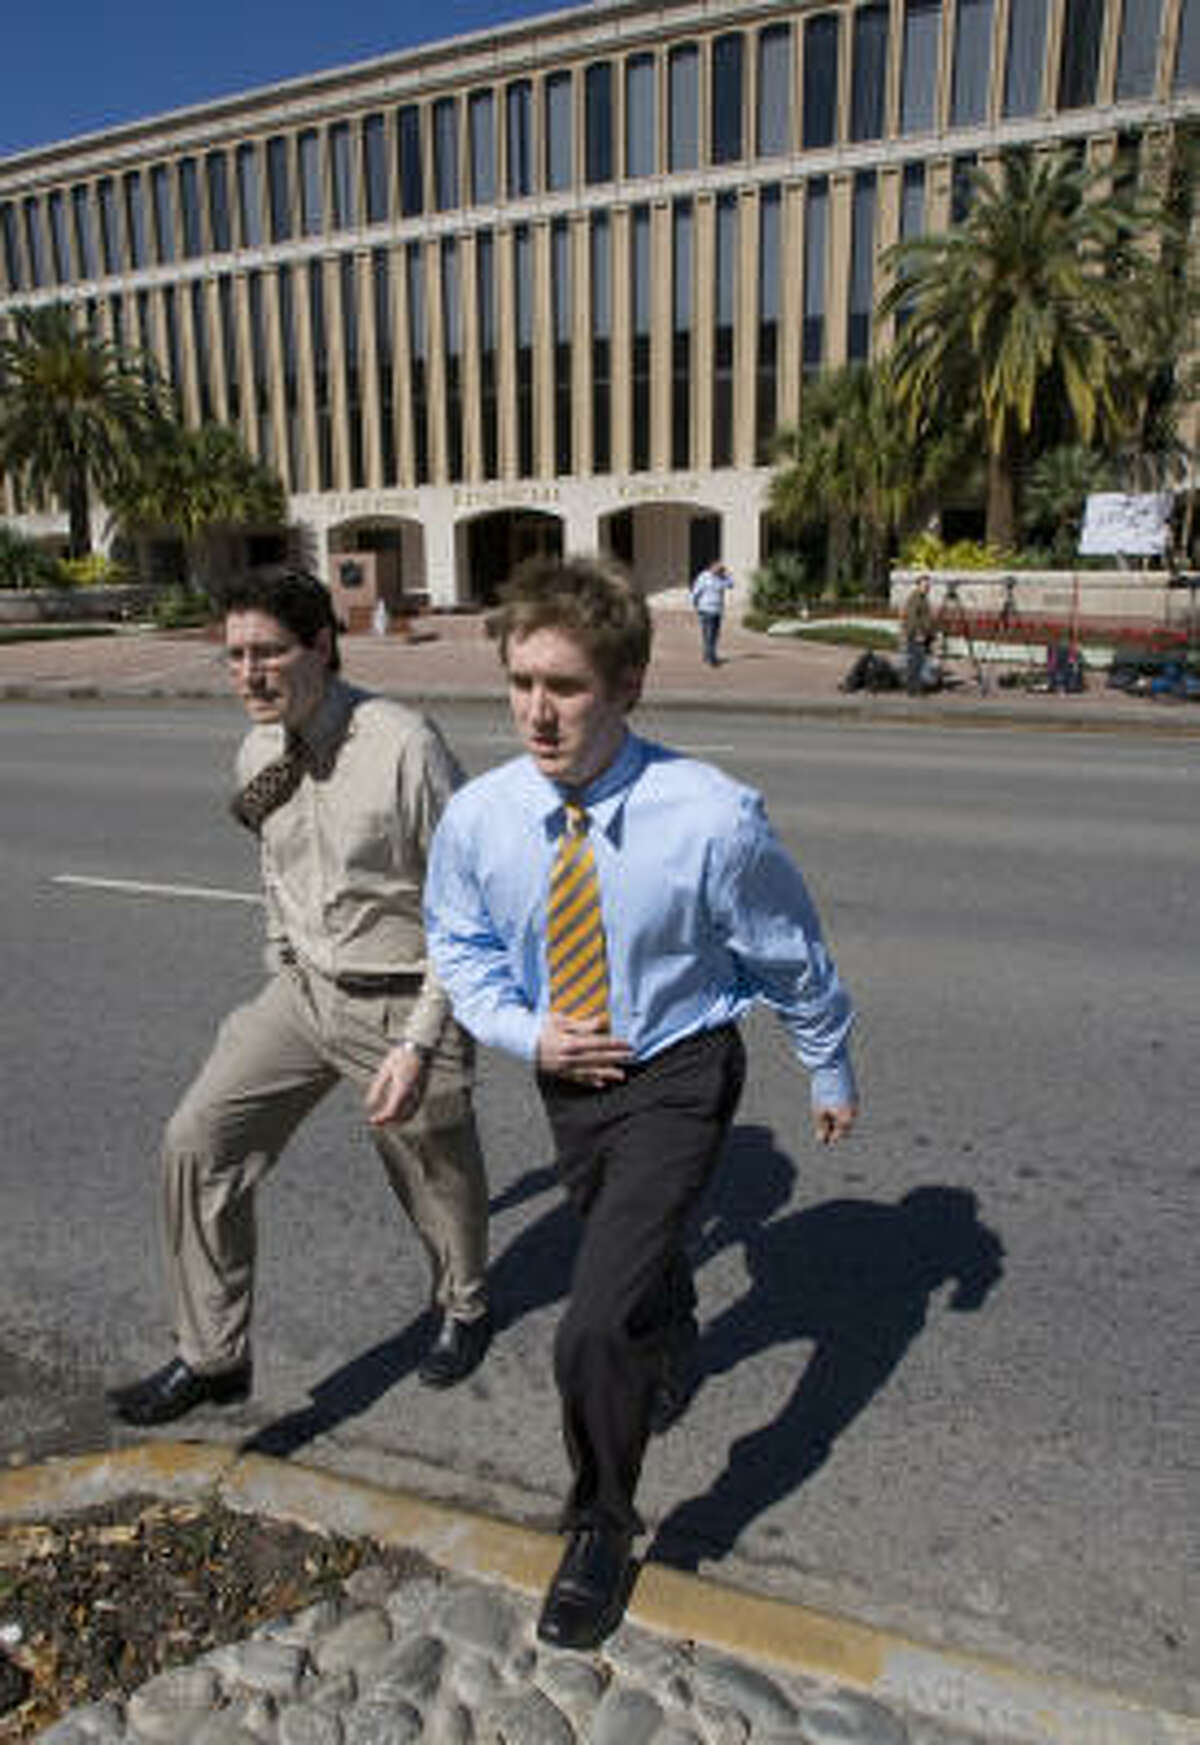 Two investigators cross Westheimer after leaving the locked offices of Stanford Financial Group at 5050 Westheimer Thursday in Houston.